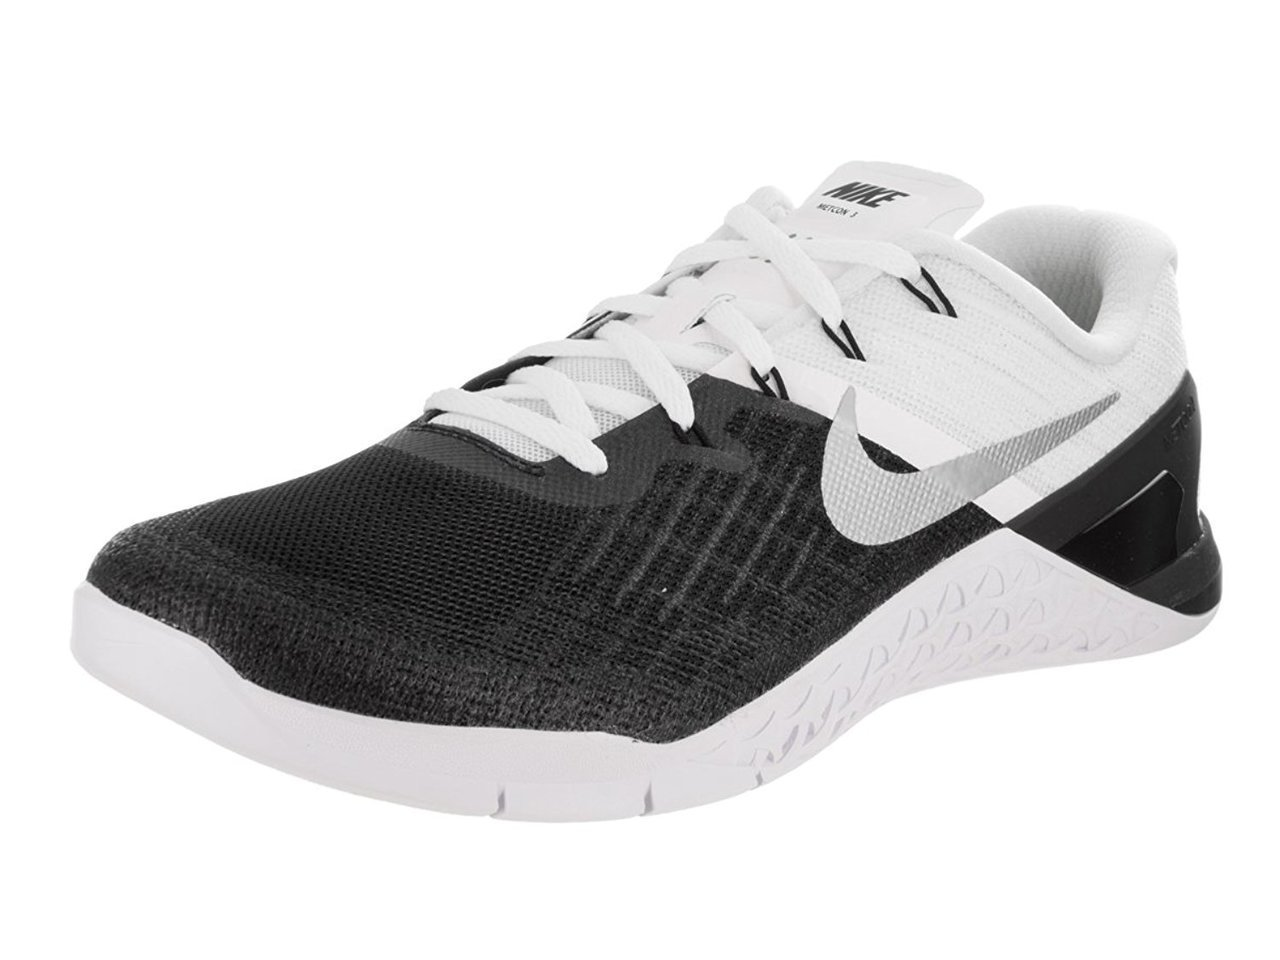 NIKE Mens Metcon 3 Cross Training Sneaker, Black/White/Metallic Silver, 11 D(M) US by NIKE